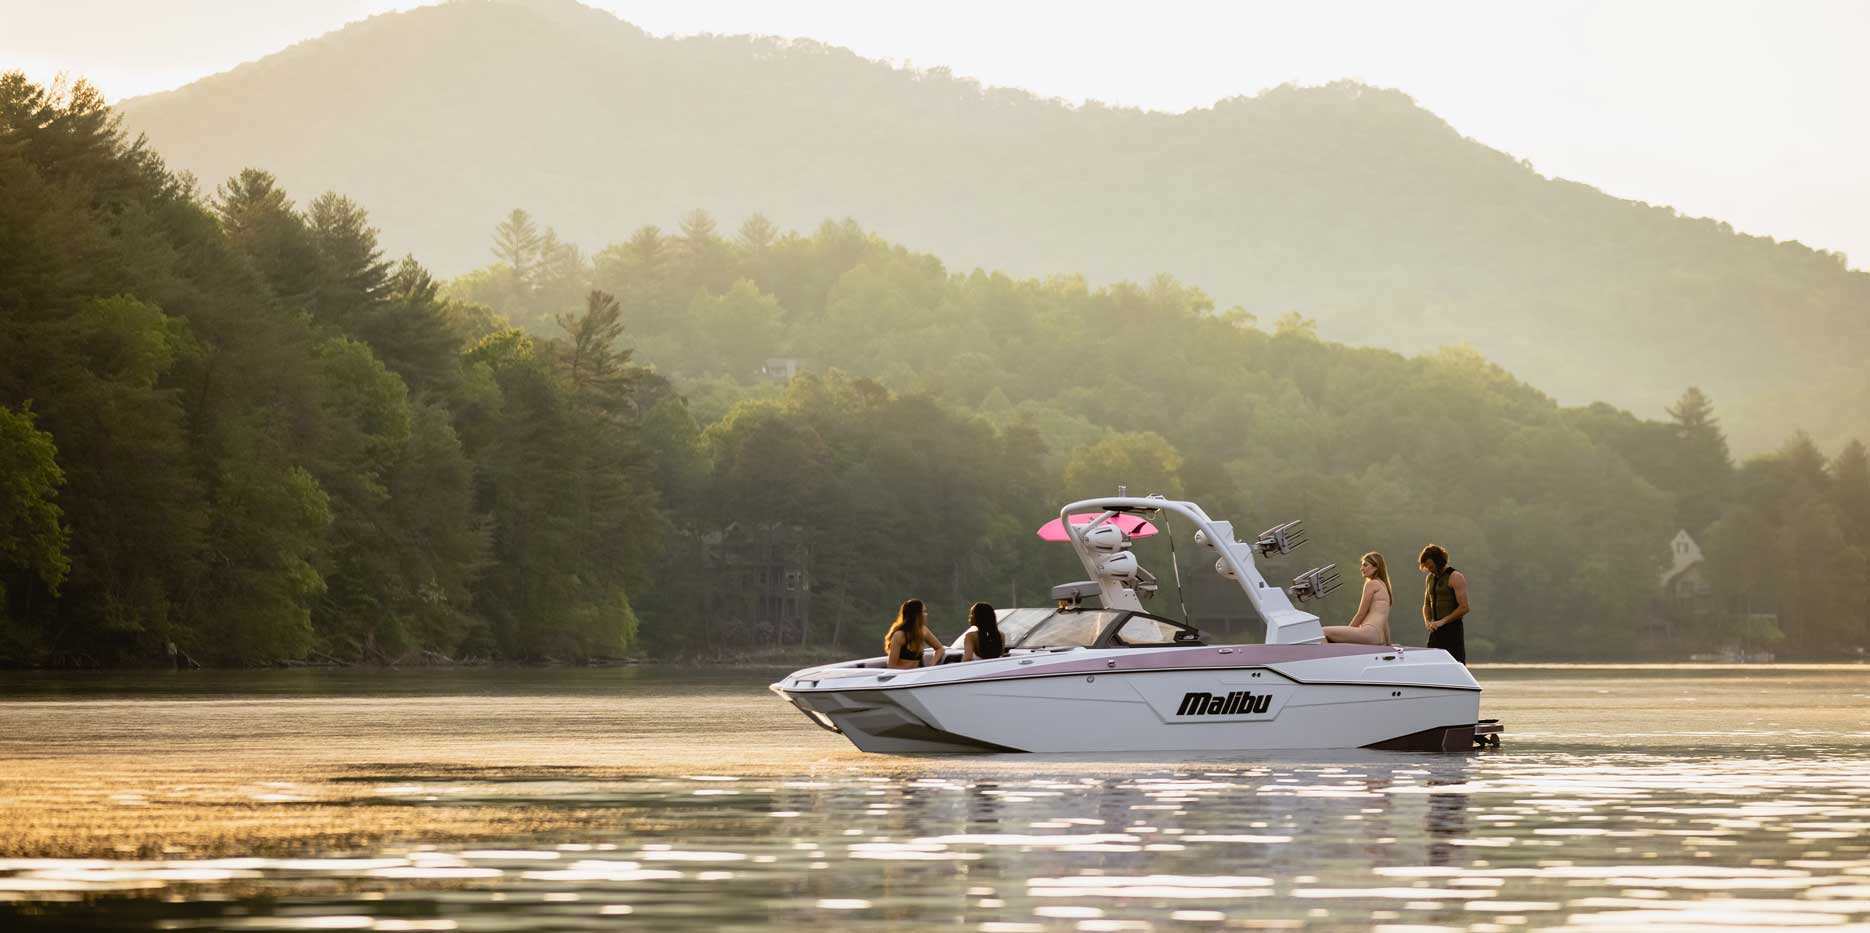 The most luxurious towboat in the world, Malibu Boats M240